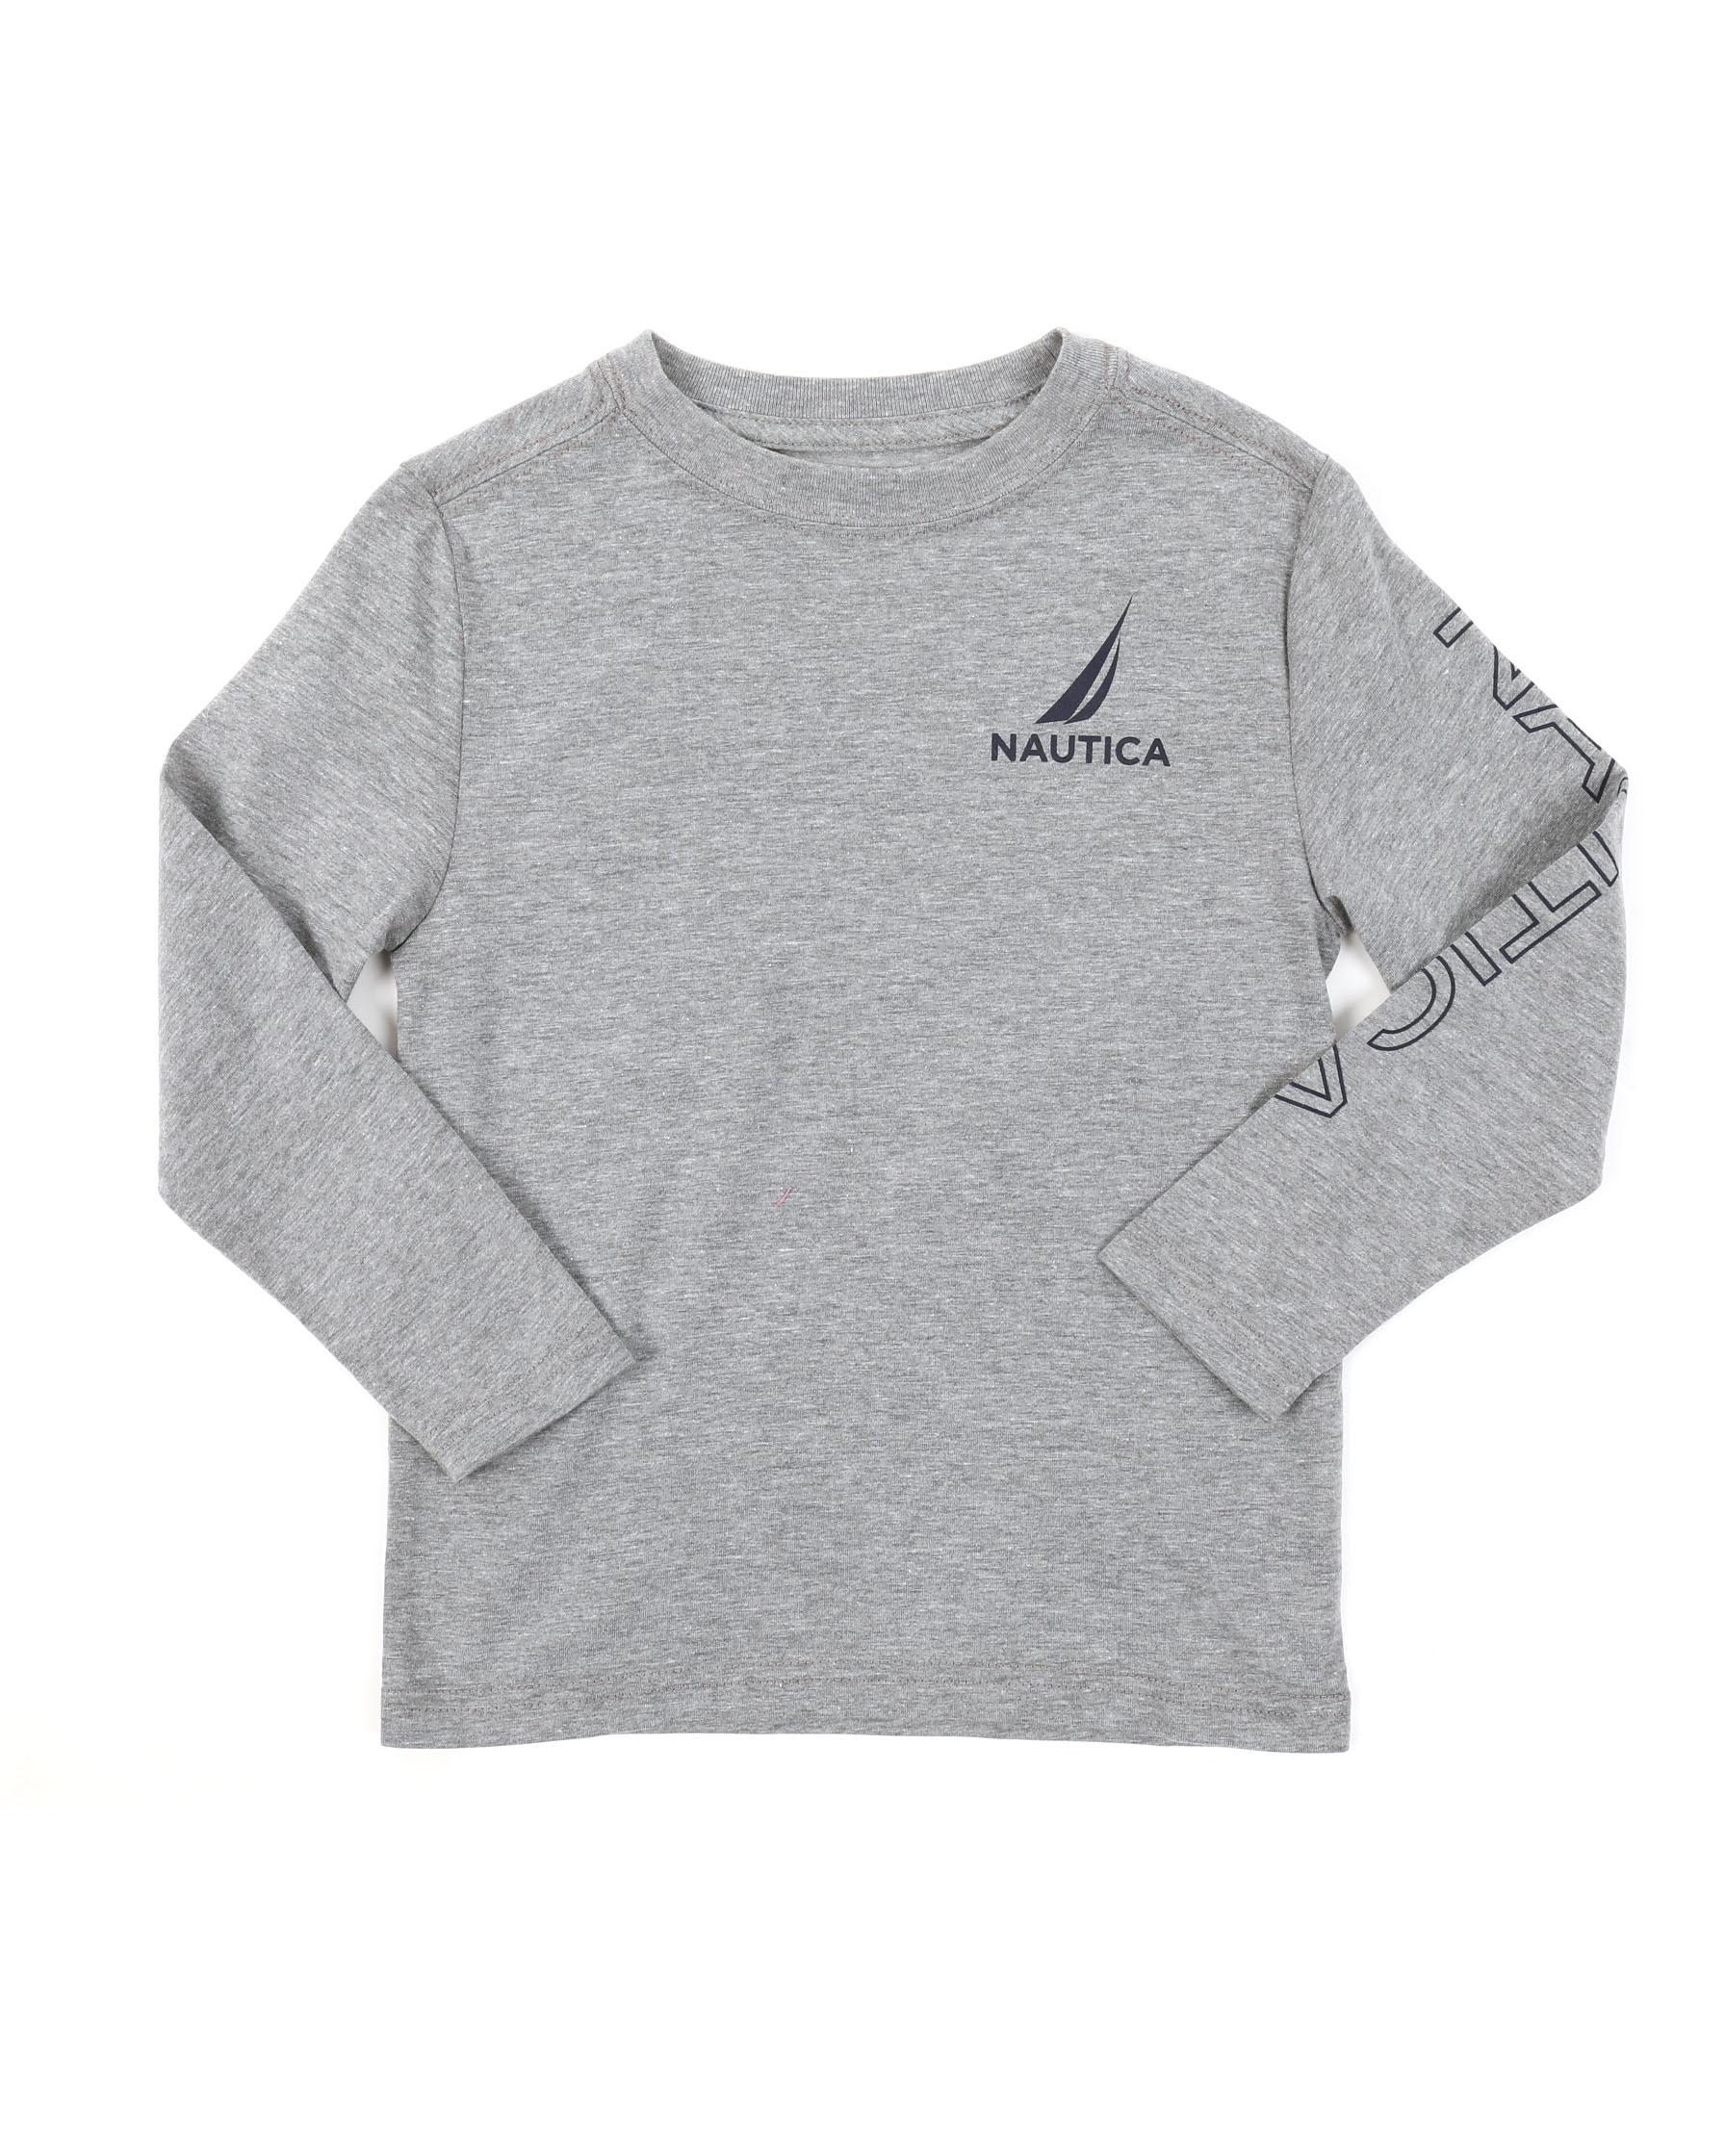 8f35112d63 Buy Long Sleeve Graphic Tee (4-7) Boys Tops from Nautica. Find ...